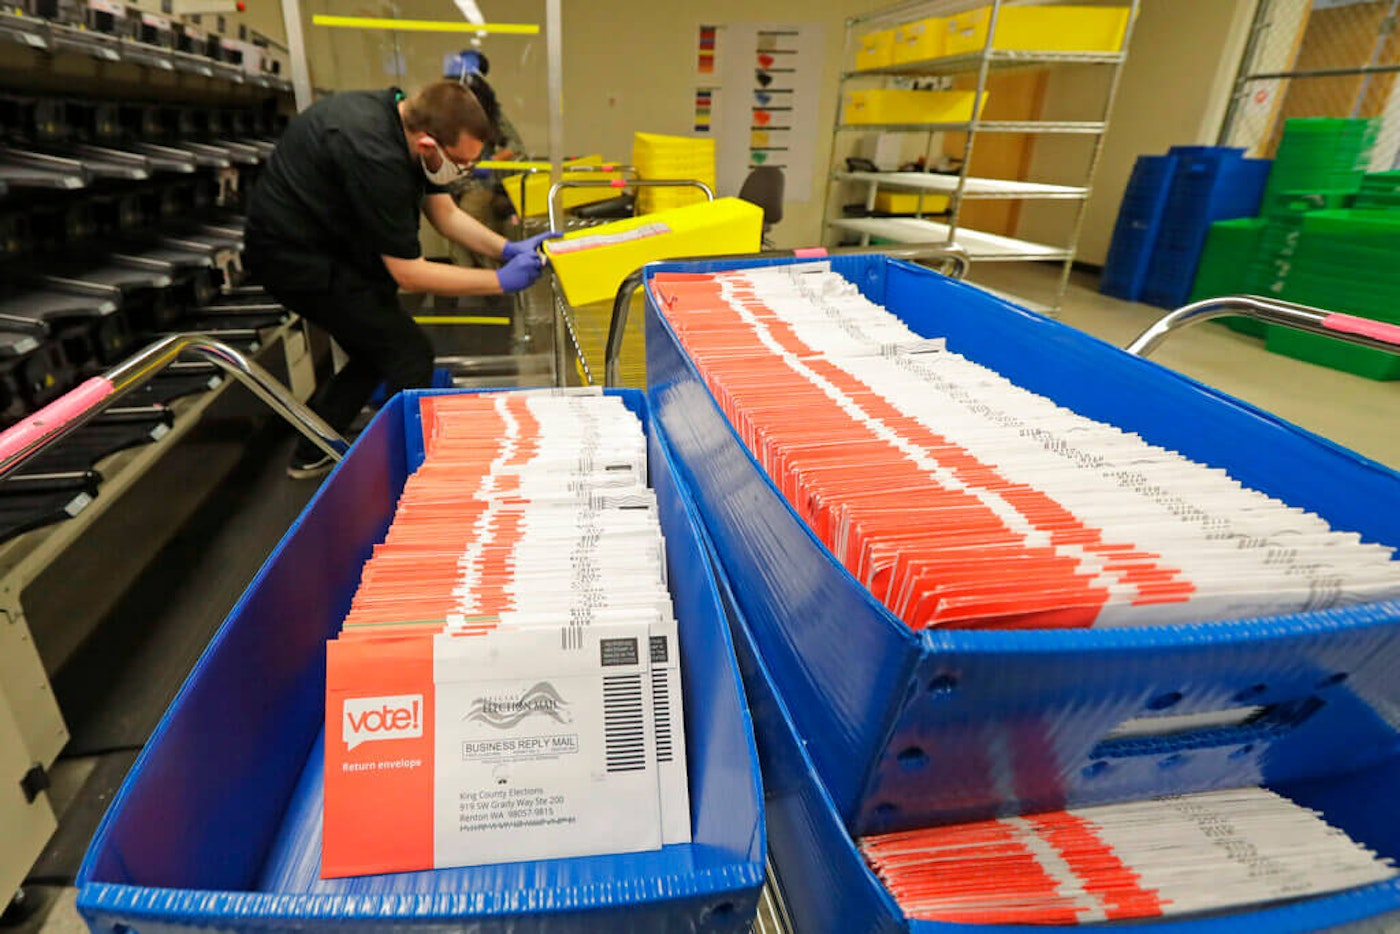 In this Aug. 5, 2020, file photo, vote-by-mail ballots are shown in sorting trays at the King County Elections headquarters in Renton, Wash., south of Seattle. Washington is one of the states that does all vote-by-mail, a voting method getting more attention due to the COVID-19 pandemic. (AP Photo/Ted S. Warren, File)